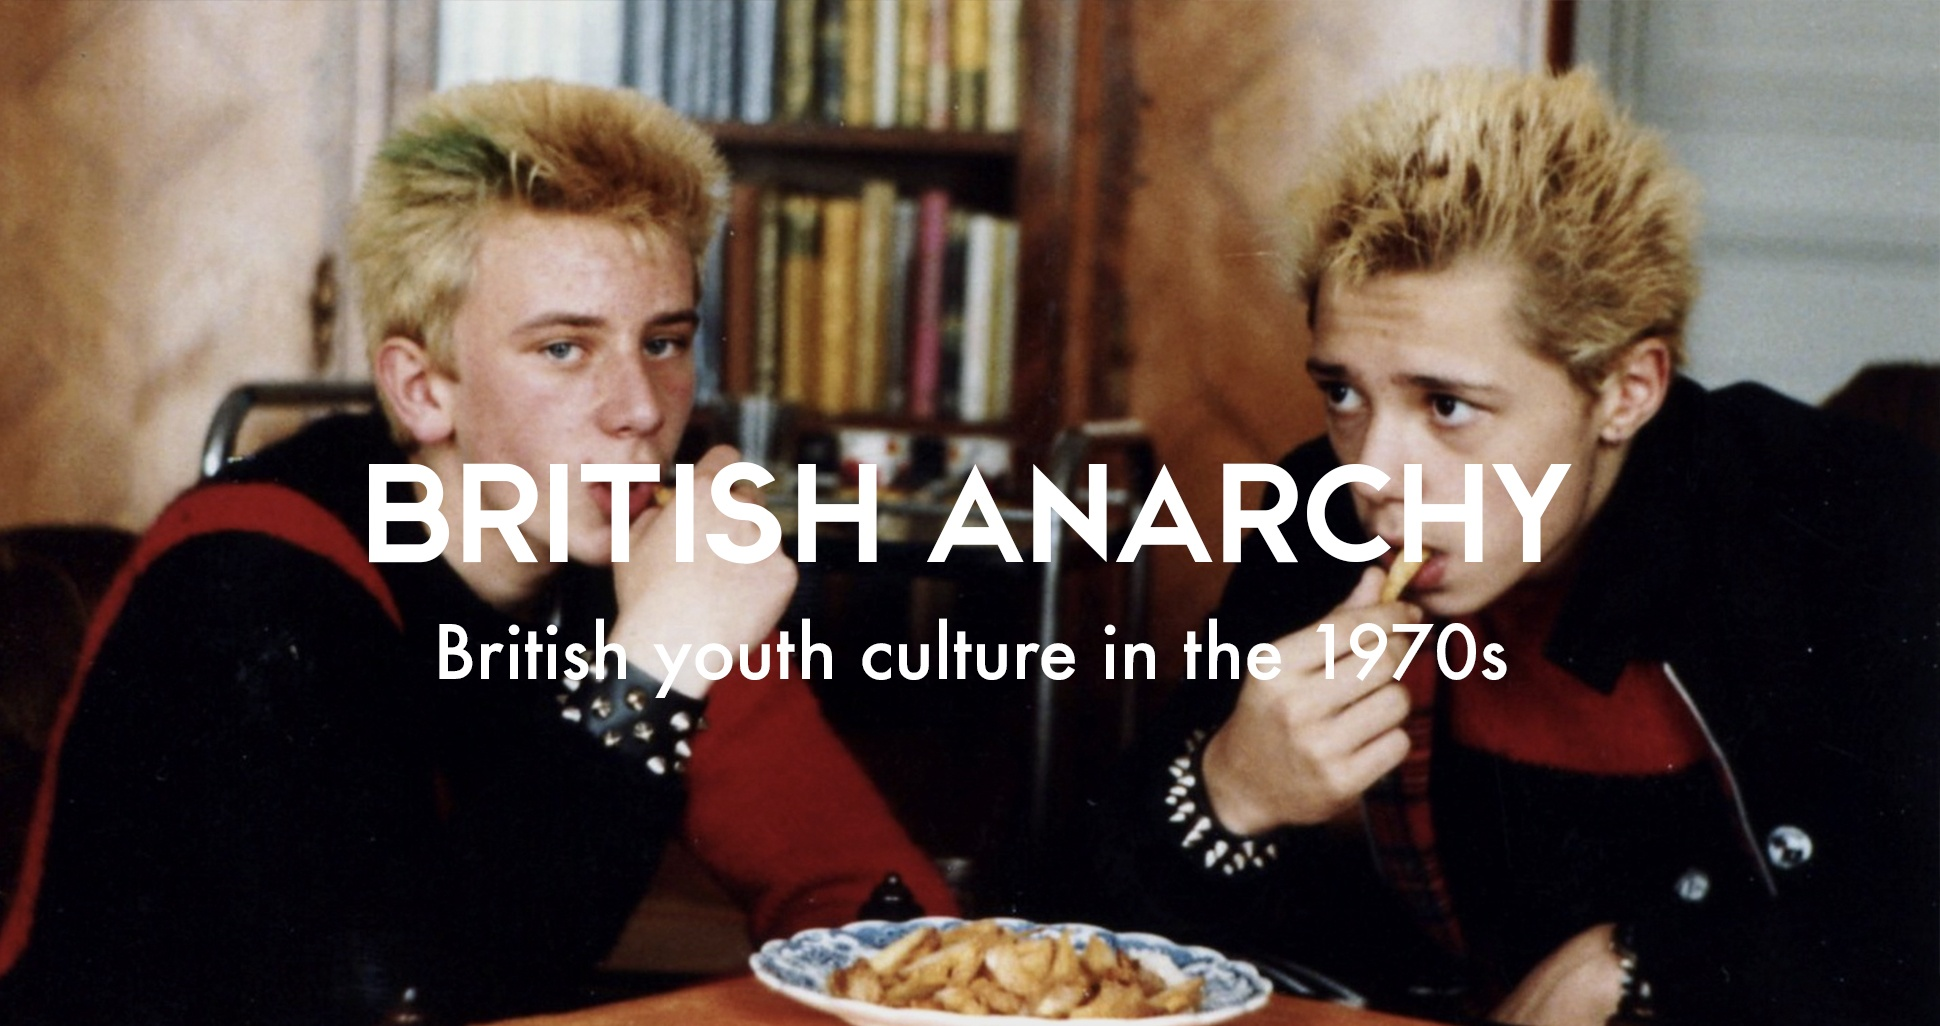 The history of British youth culture: British anarchy, youth culture in the 1970s